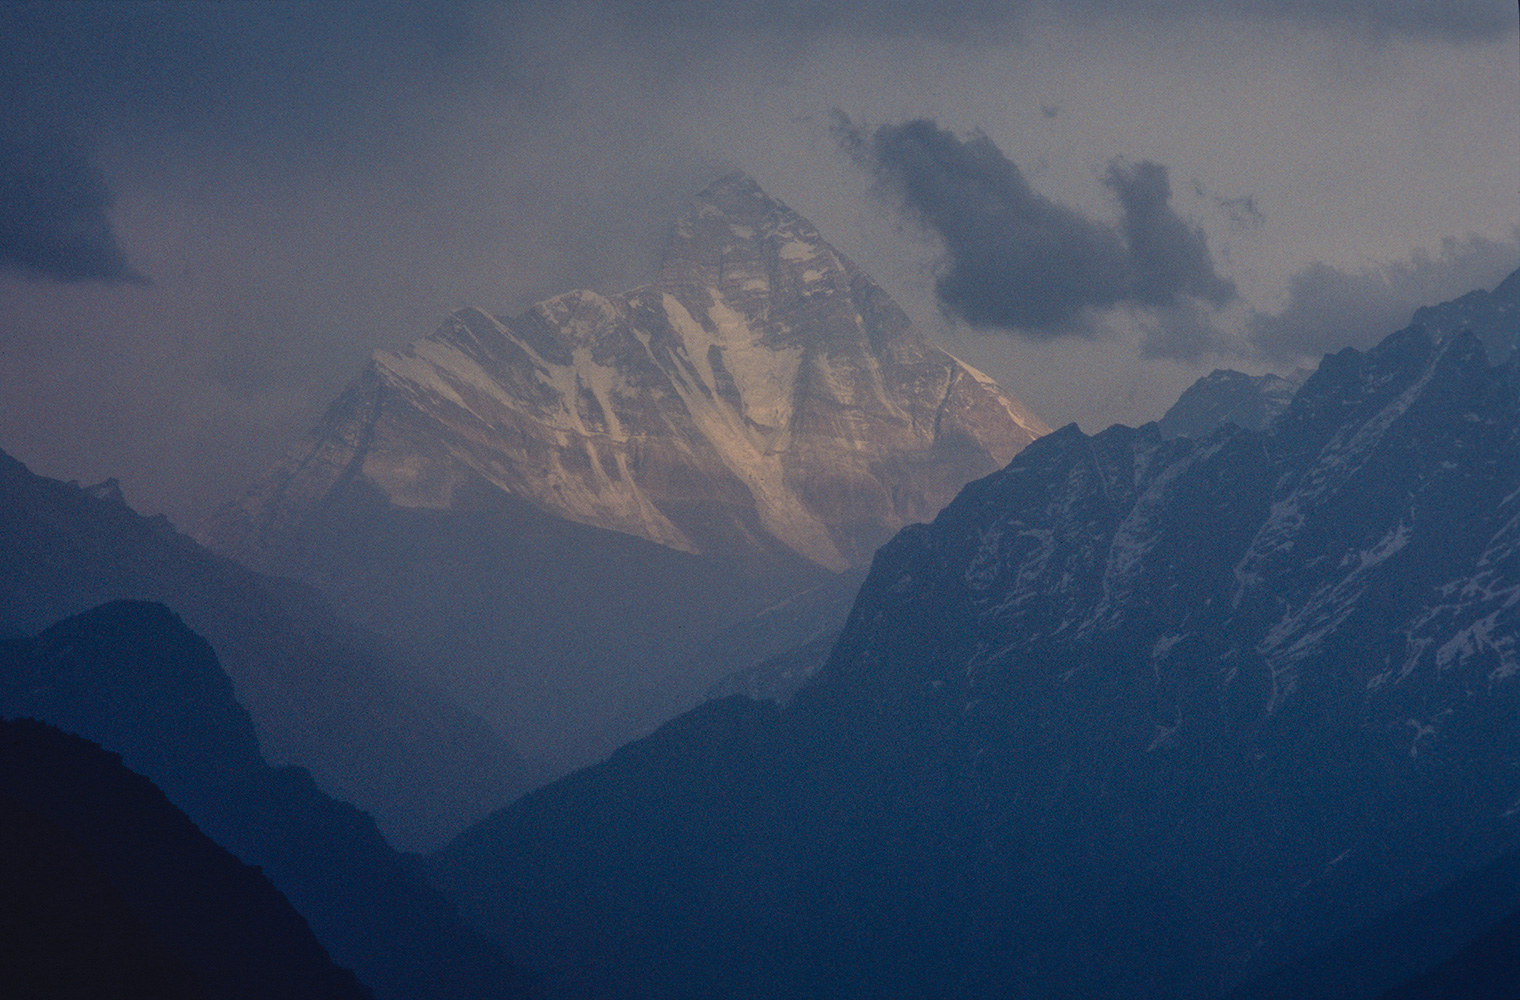 Telephoto from the road to Mana above Badrinath